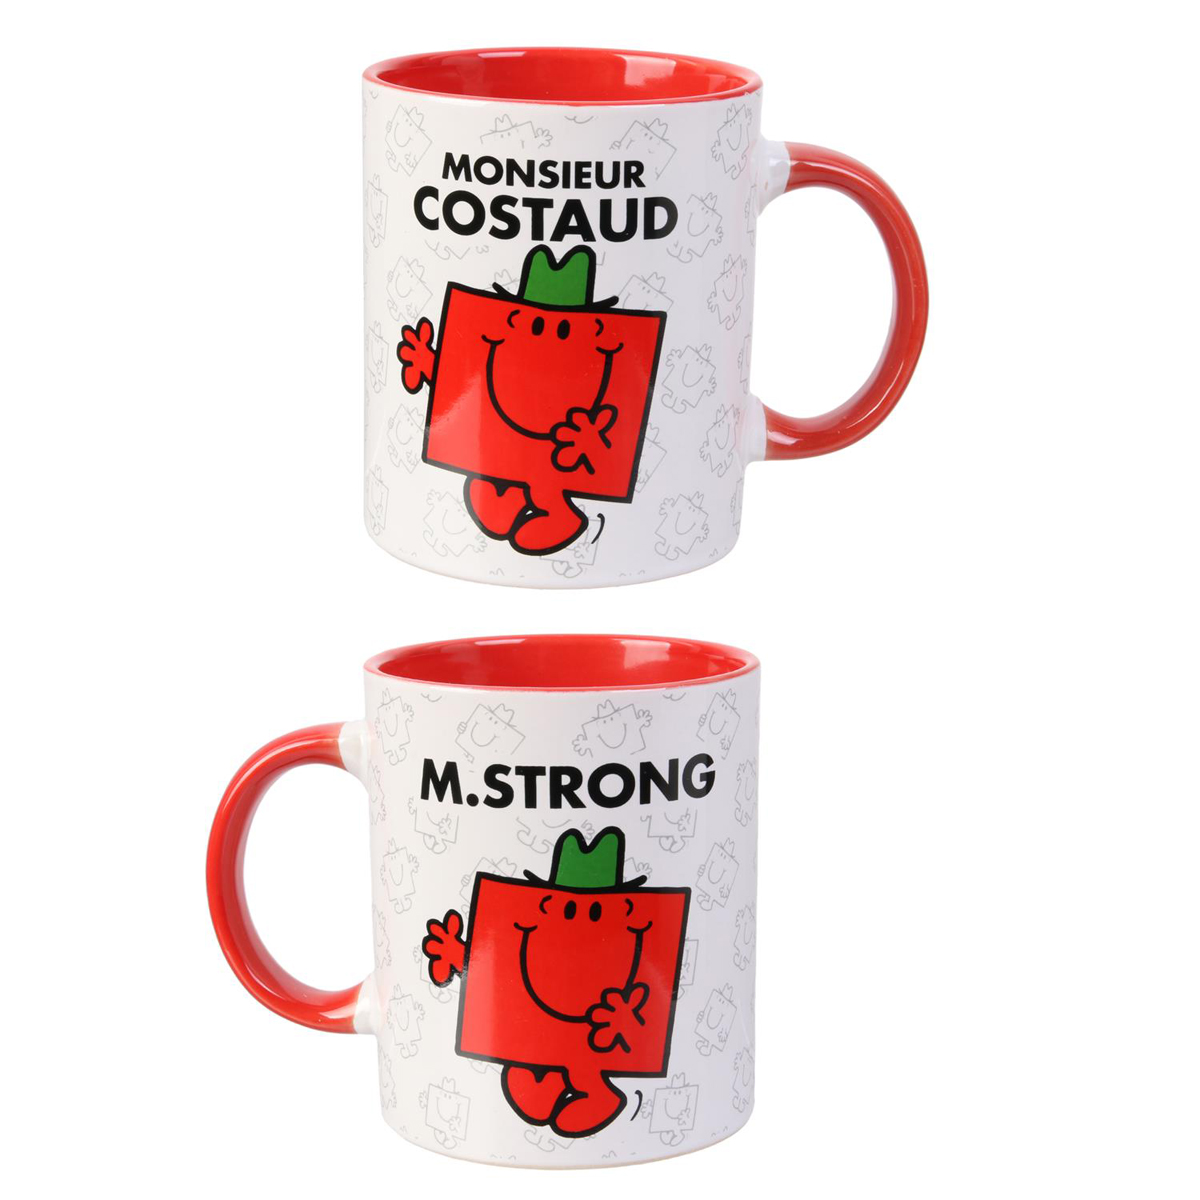 Mug céramique \'Monsieur Madame\' rouge (M Costaud - MStrong) - 95x80 mm - [Q8991]